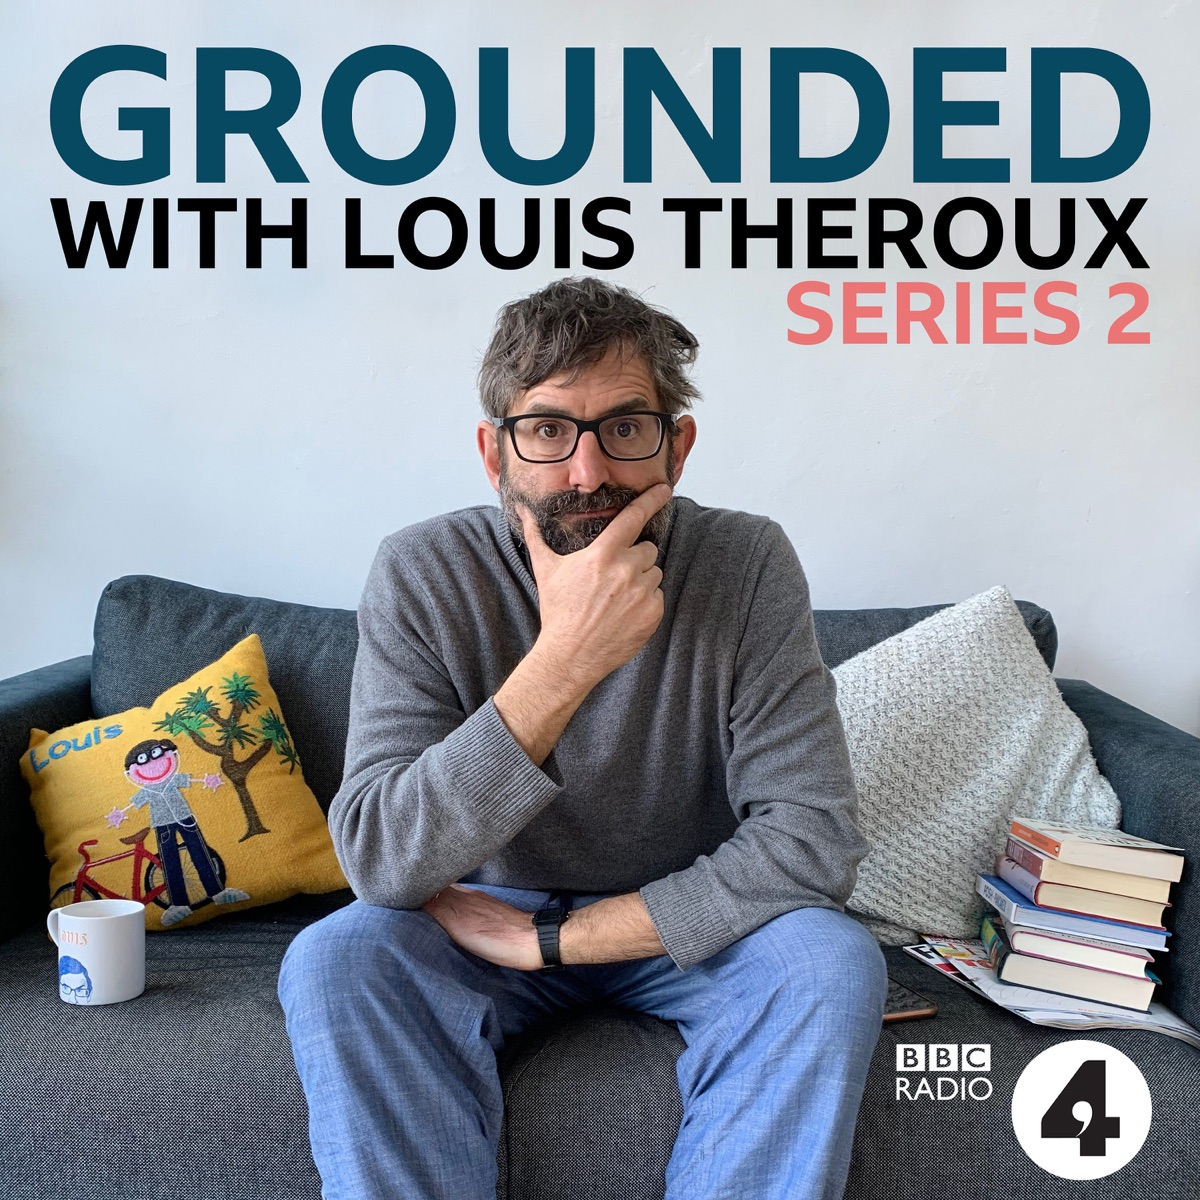 Grounded with Louis Theroux - Series 2 Preview